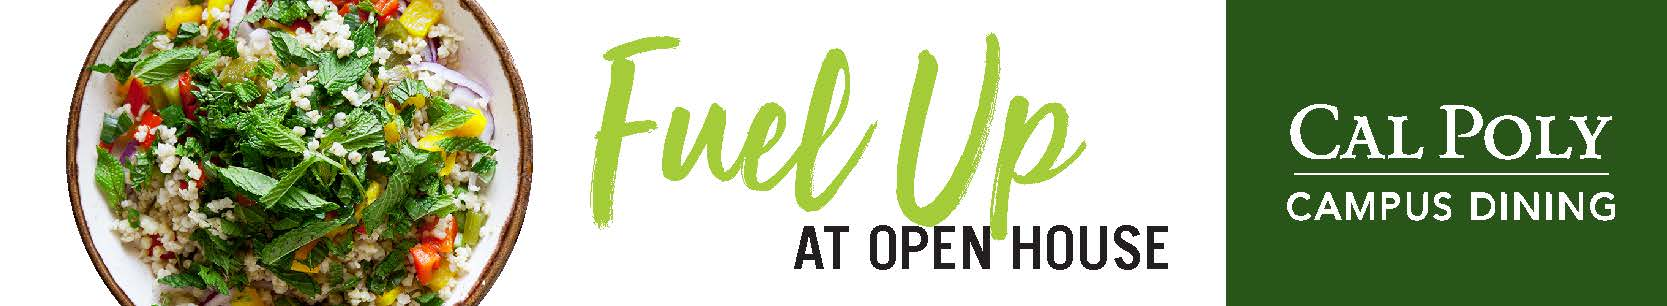 Fuel Up at Open House Advertisement